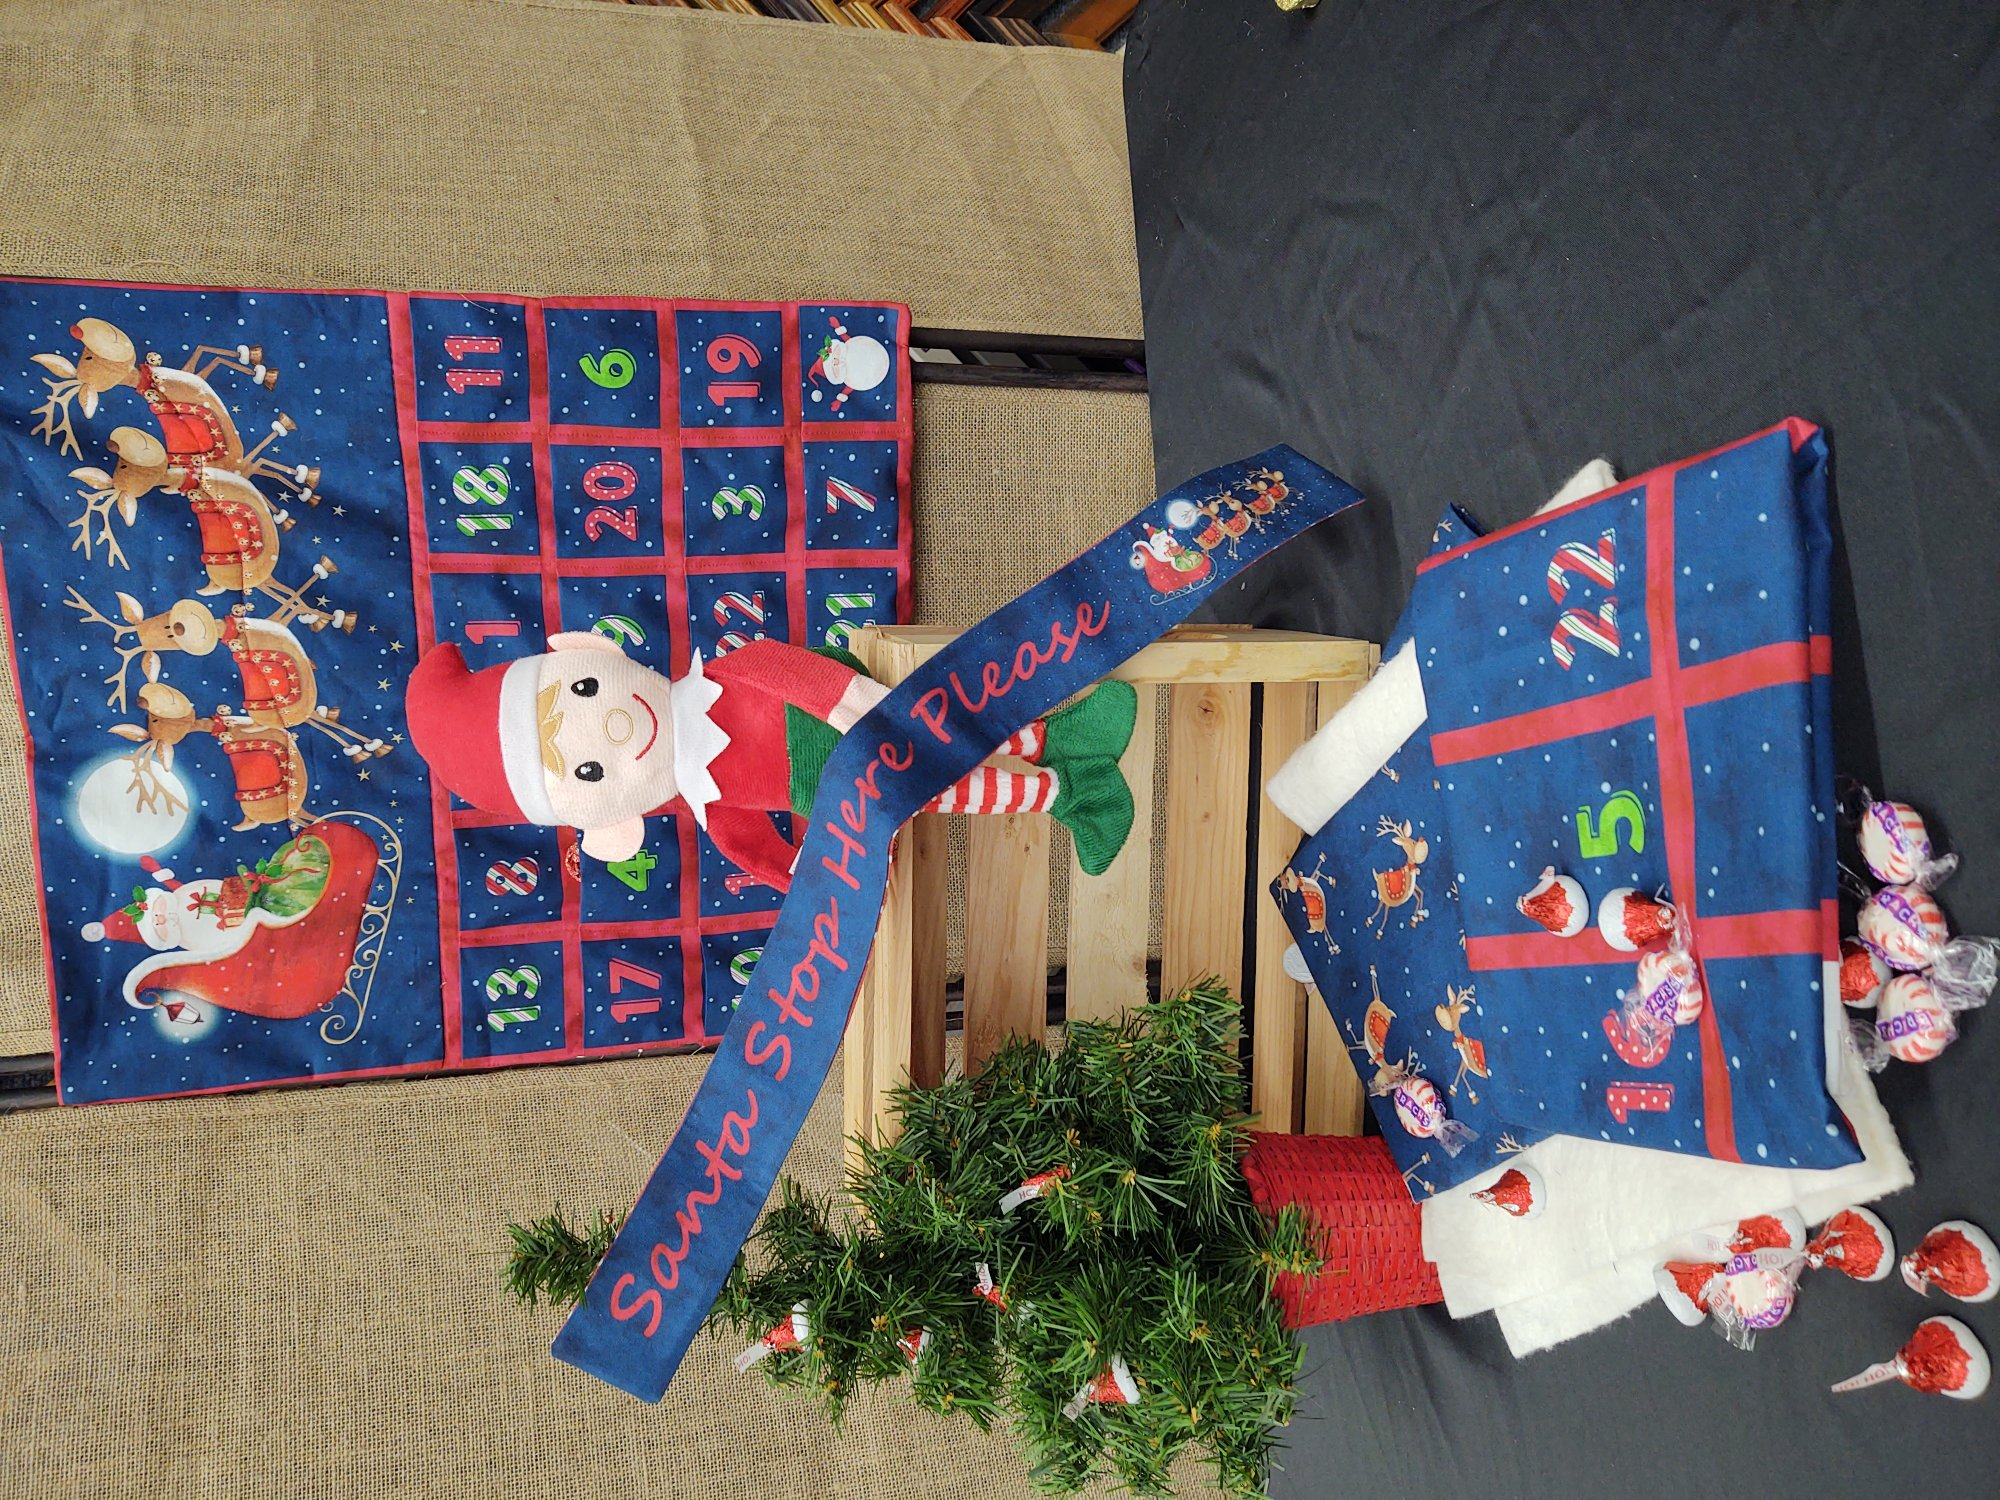 SANTA STOP HERE ADVENT PANEL Kit